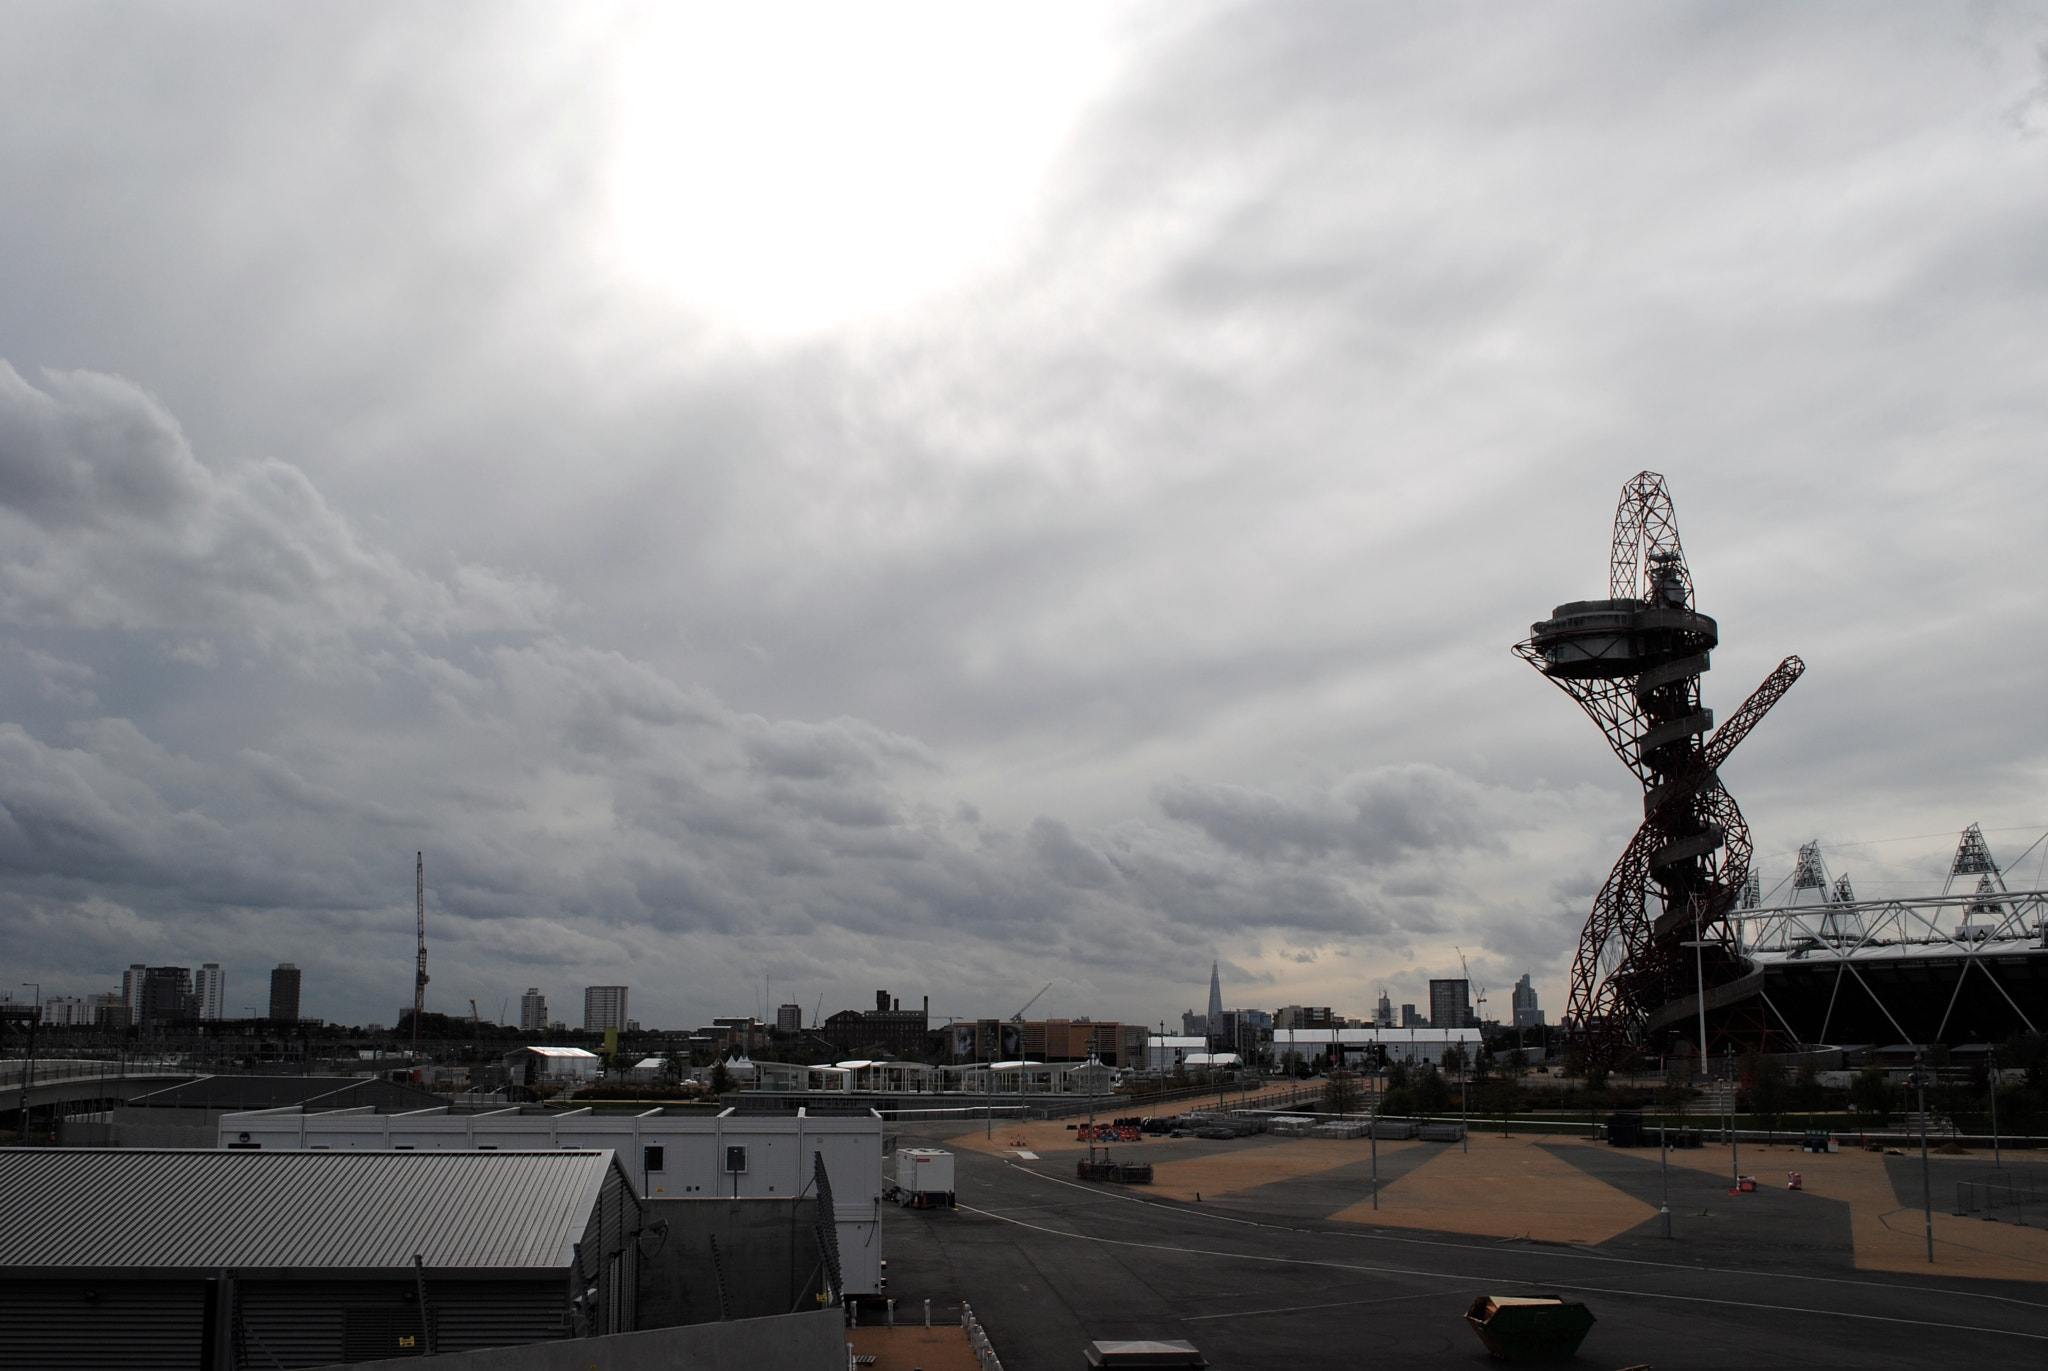 Photograph Olympic Park by Philipp Wiedekamp on 500px